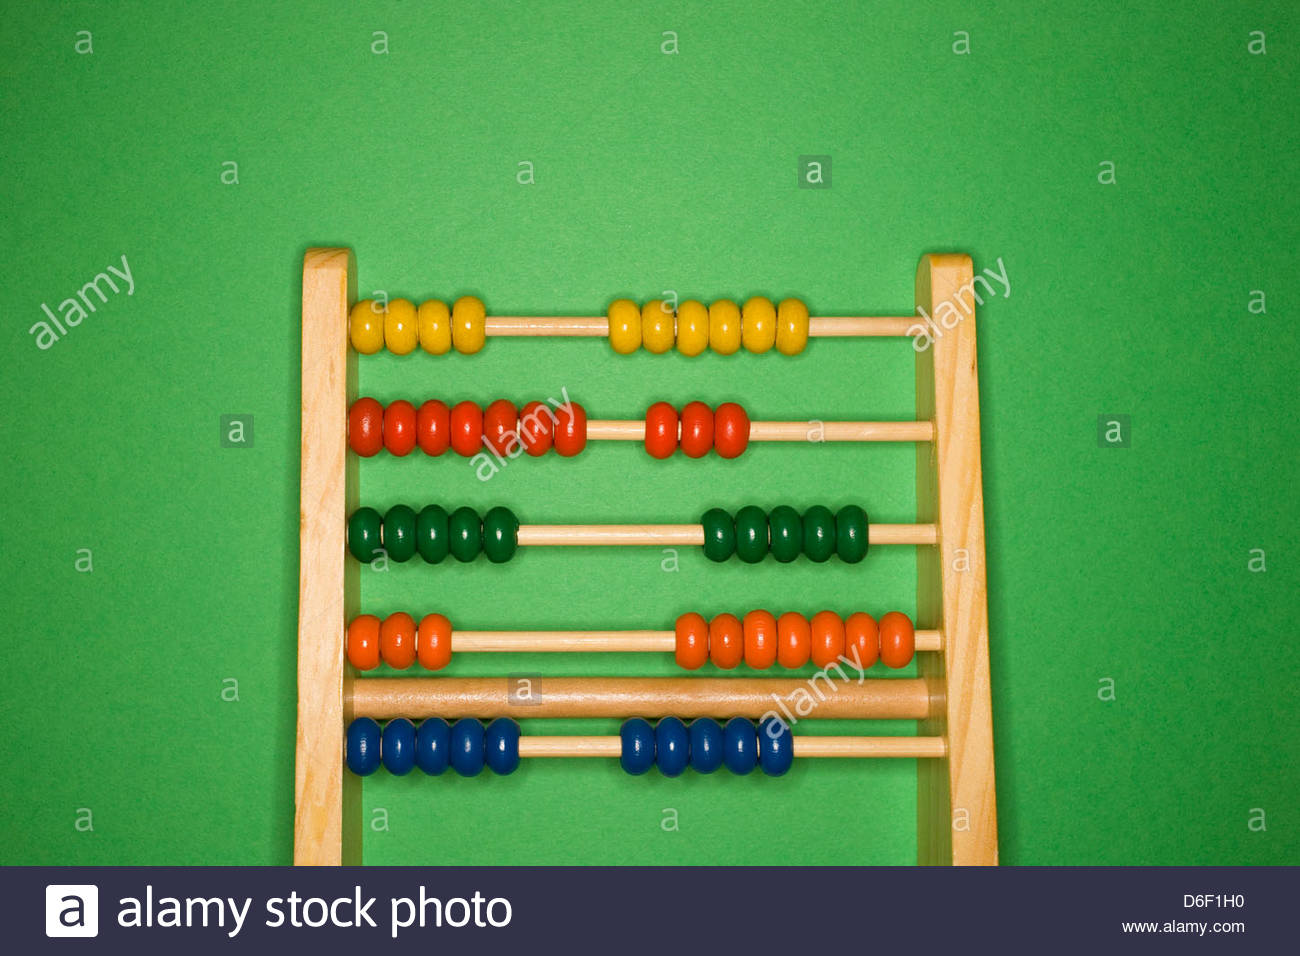 Abacus Childs multicolored counting calculation - Stock Image